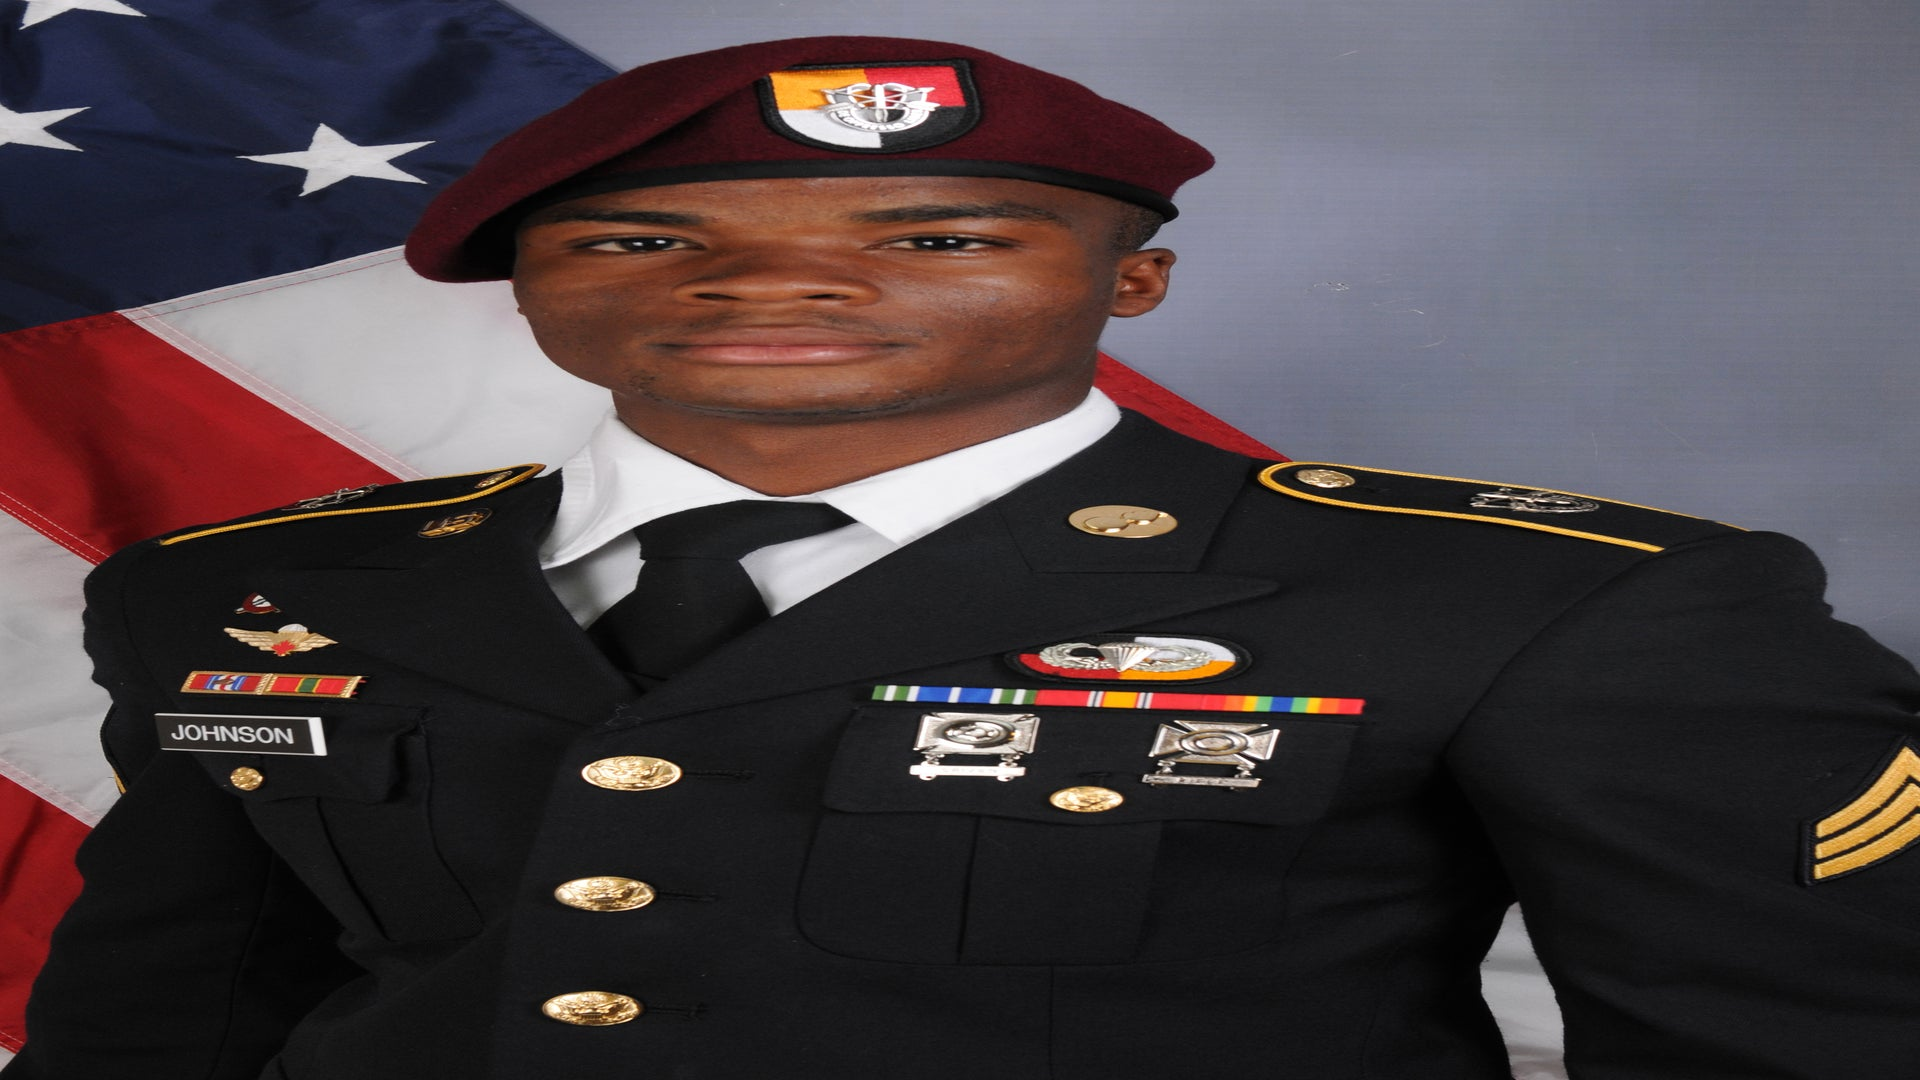 Funeral Held for Sgt. La David Johnson, Soldier at Center of Donald Trump Fight